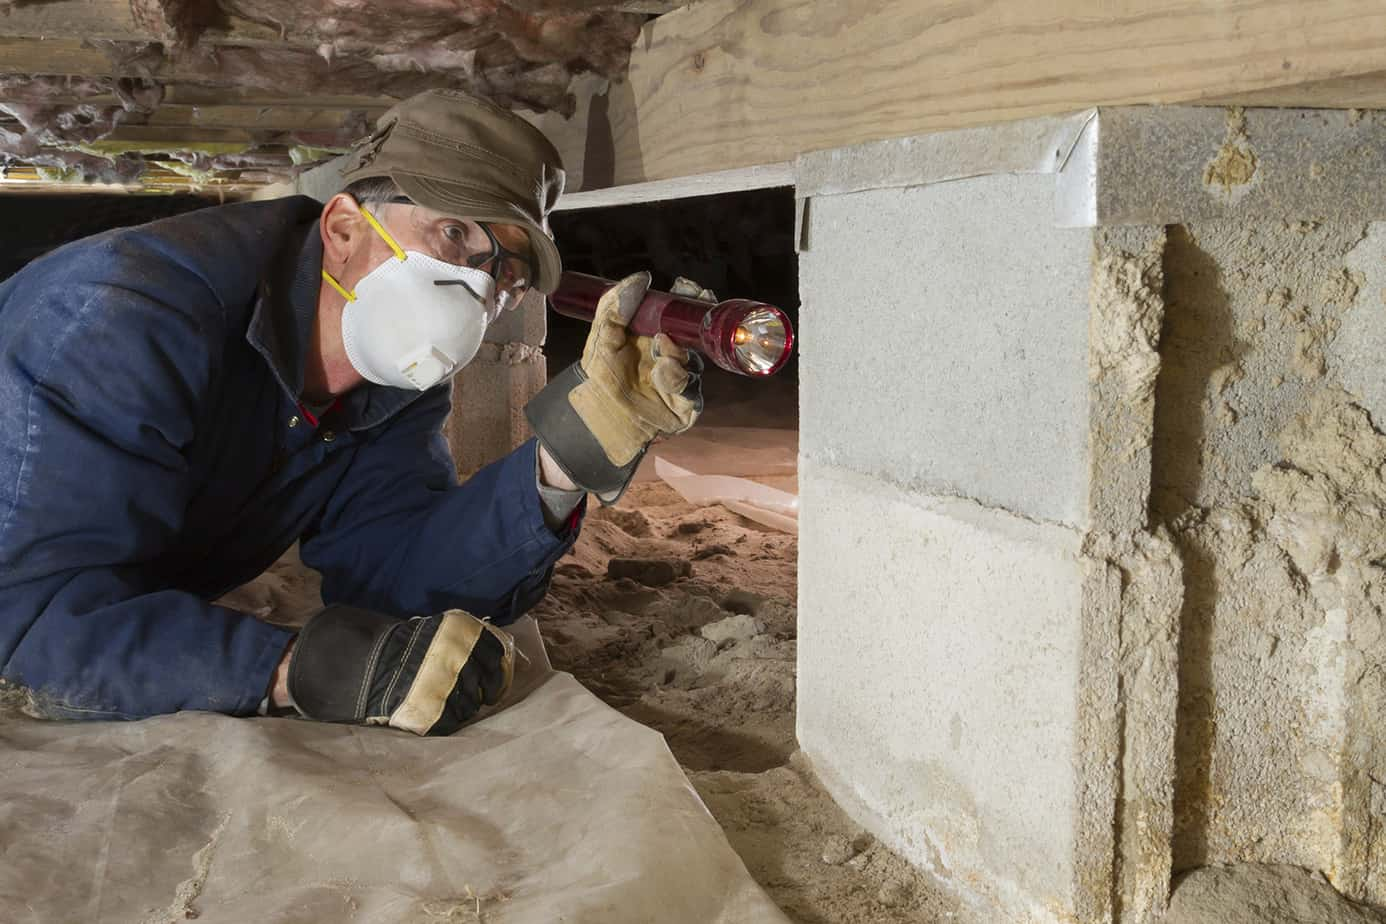 Termites Don't Stand a Chance against FullScope: Termite Inspection